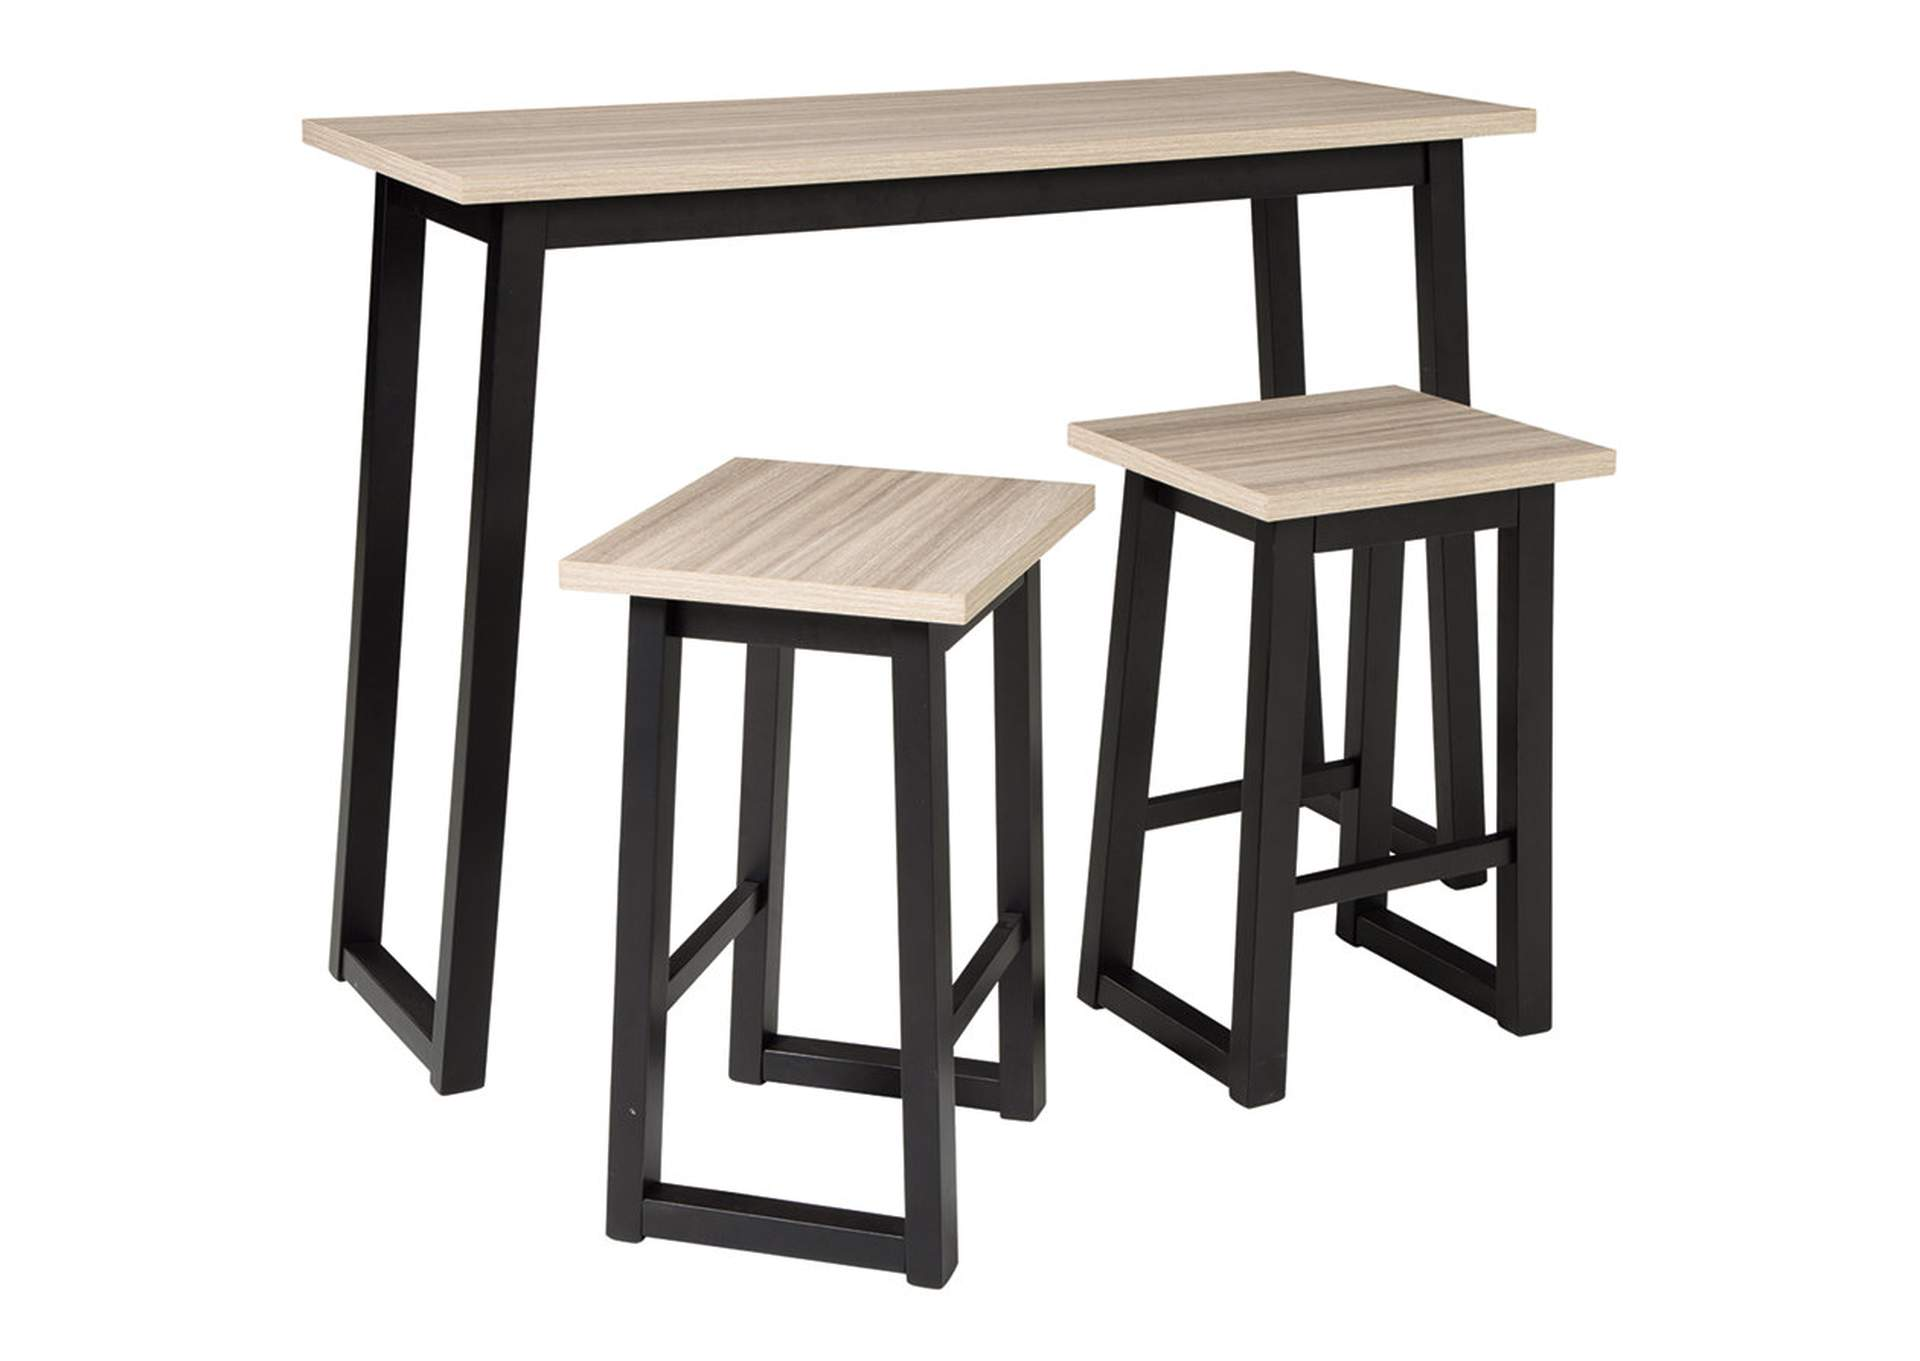 Waylowe Counter Height Dining Room Table and Bar Stools (Set of 3),Signature Design By Ashley